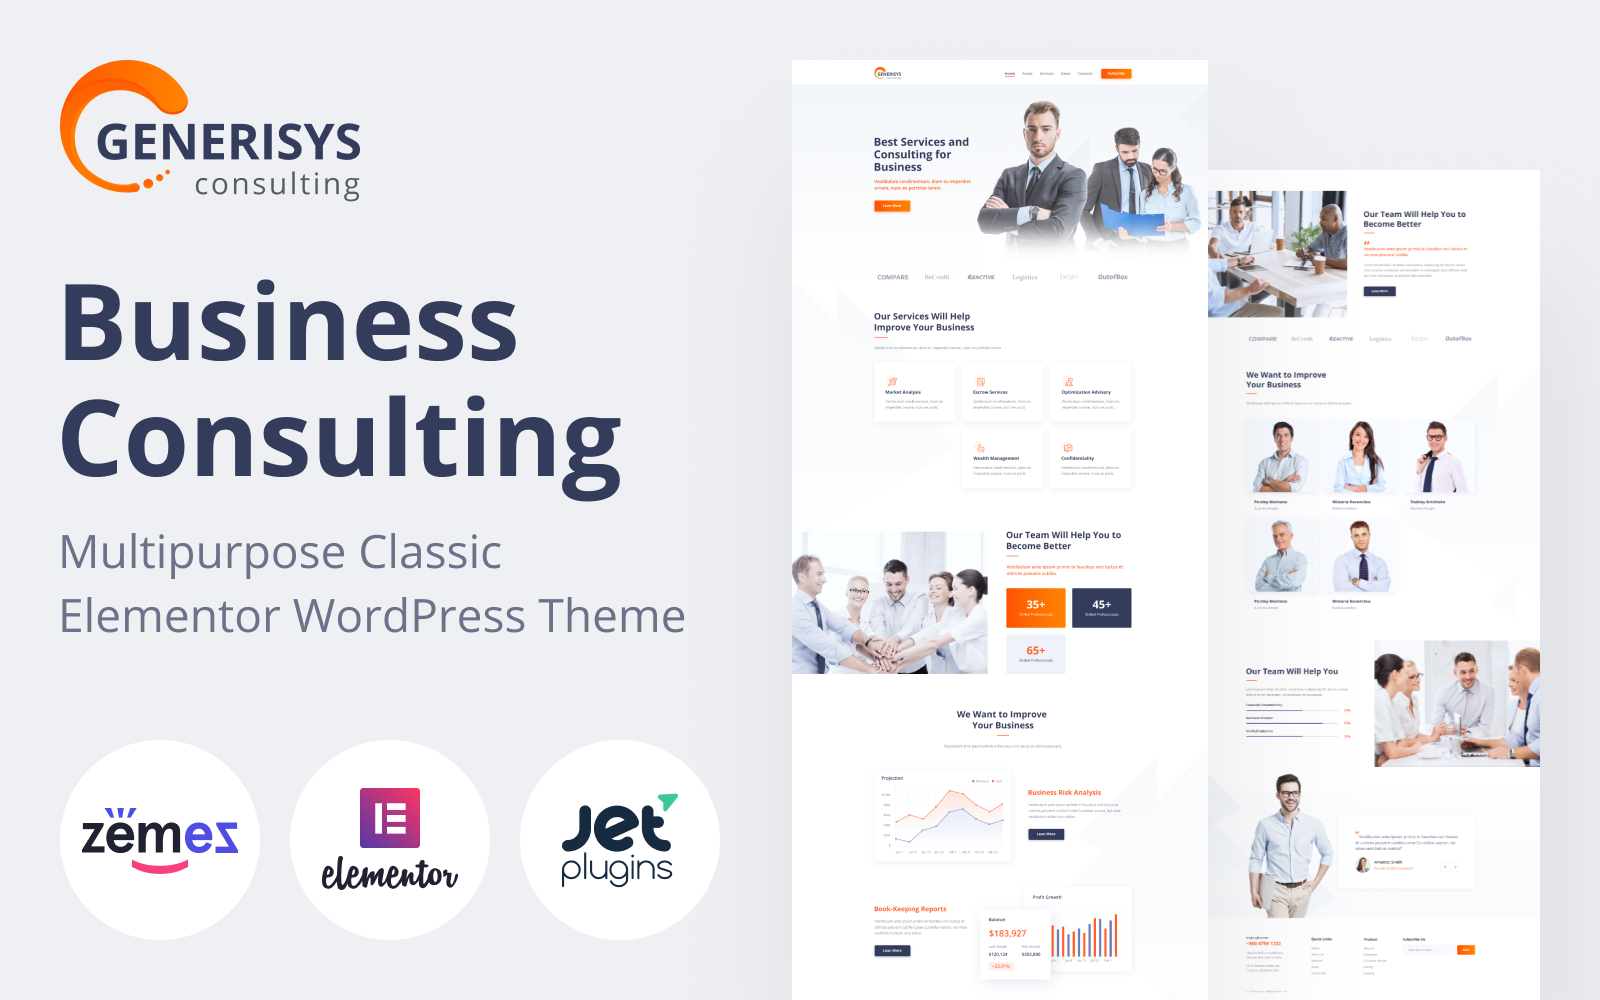 Generisys - Business Consulting Multipurpose Classic Elementor WordPress Theme - screenshot